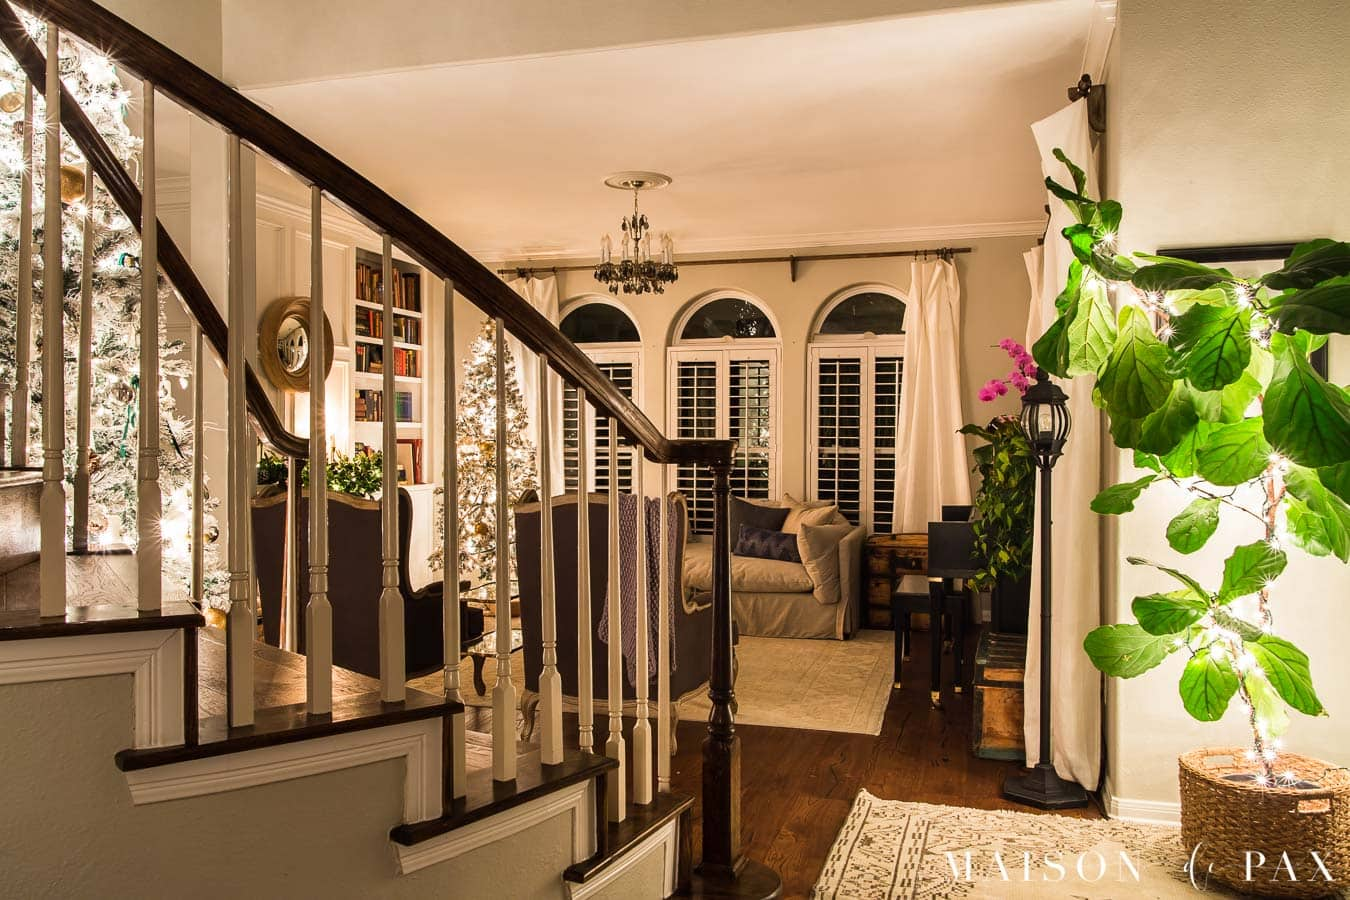 staircase and entryway with Christmas lights   Maison de Pax